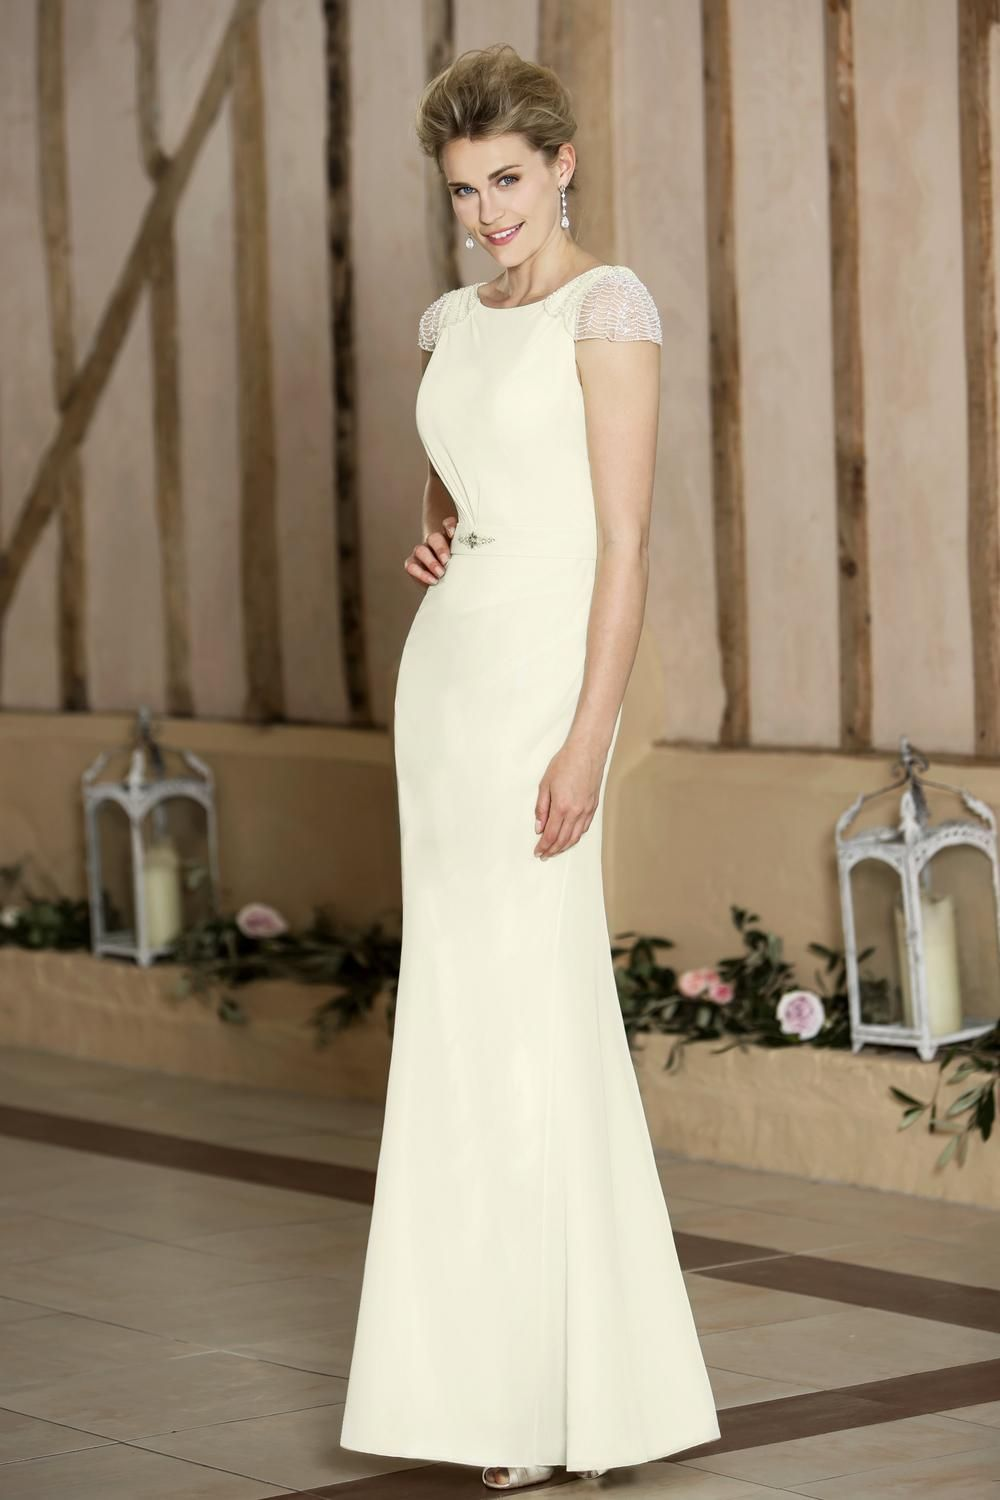 View Our True BrideR Nicki FlynnR Wedding Dresses Bridesmaid By BridesmaidsR Luna Collections Find Pretty Lace Bridal Gowns